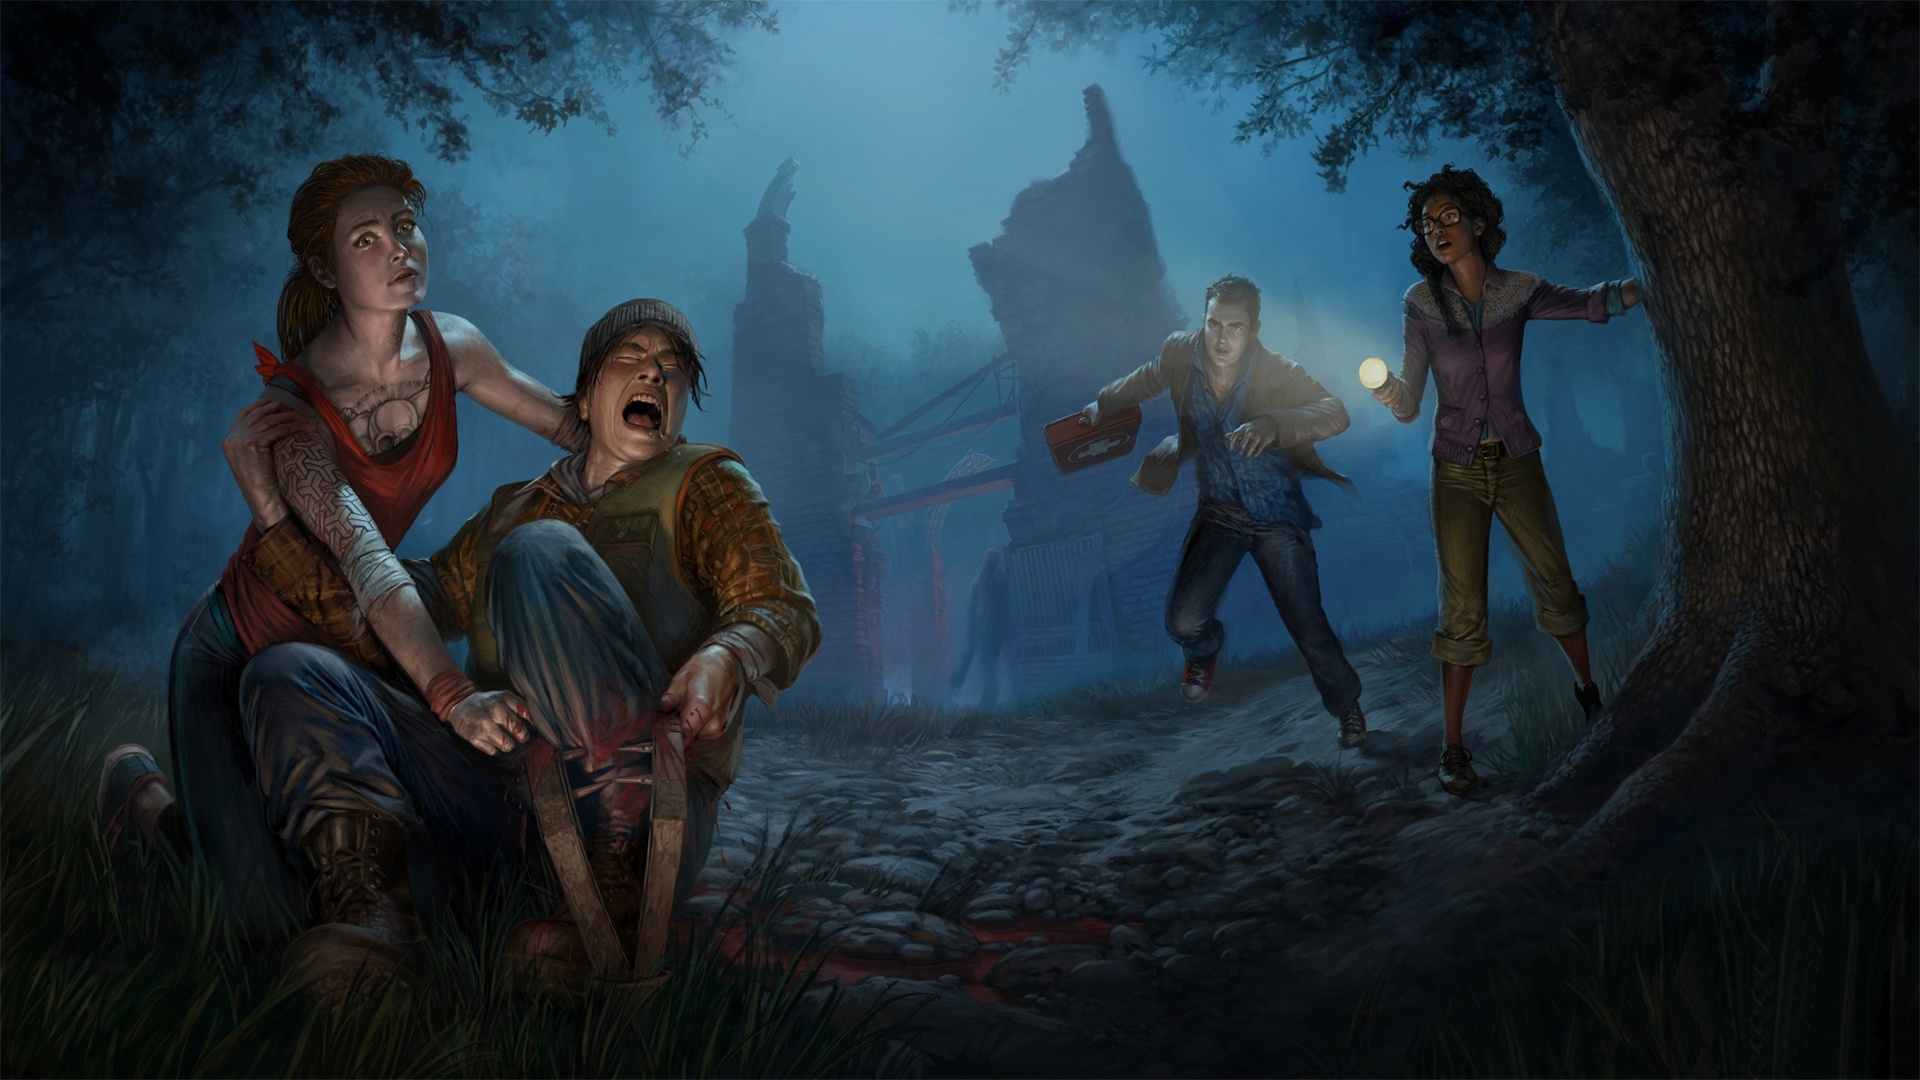 Dead By Daylight background picture